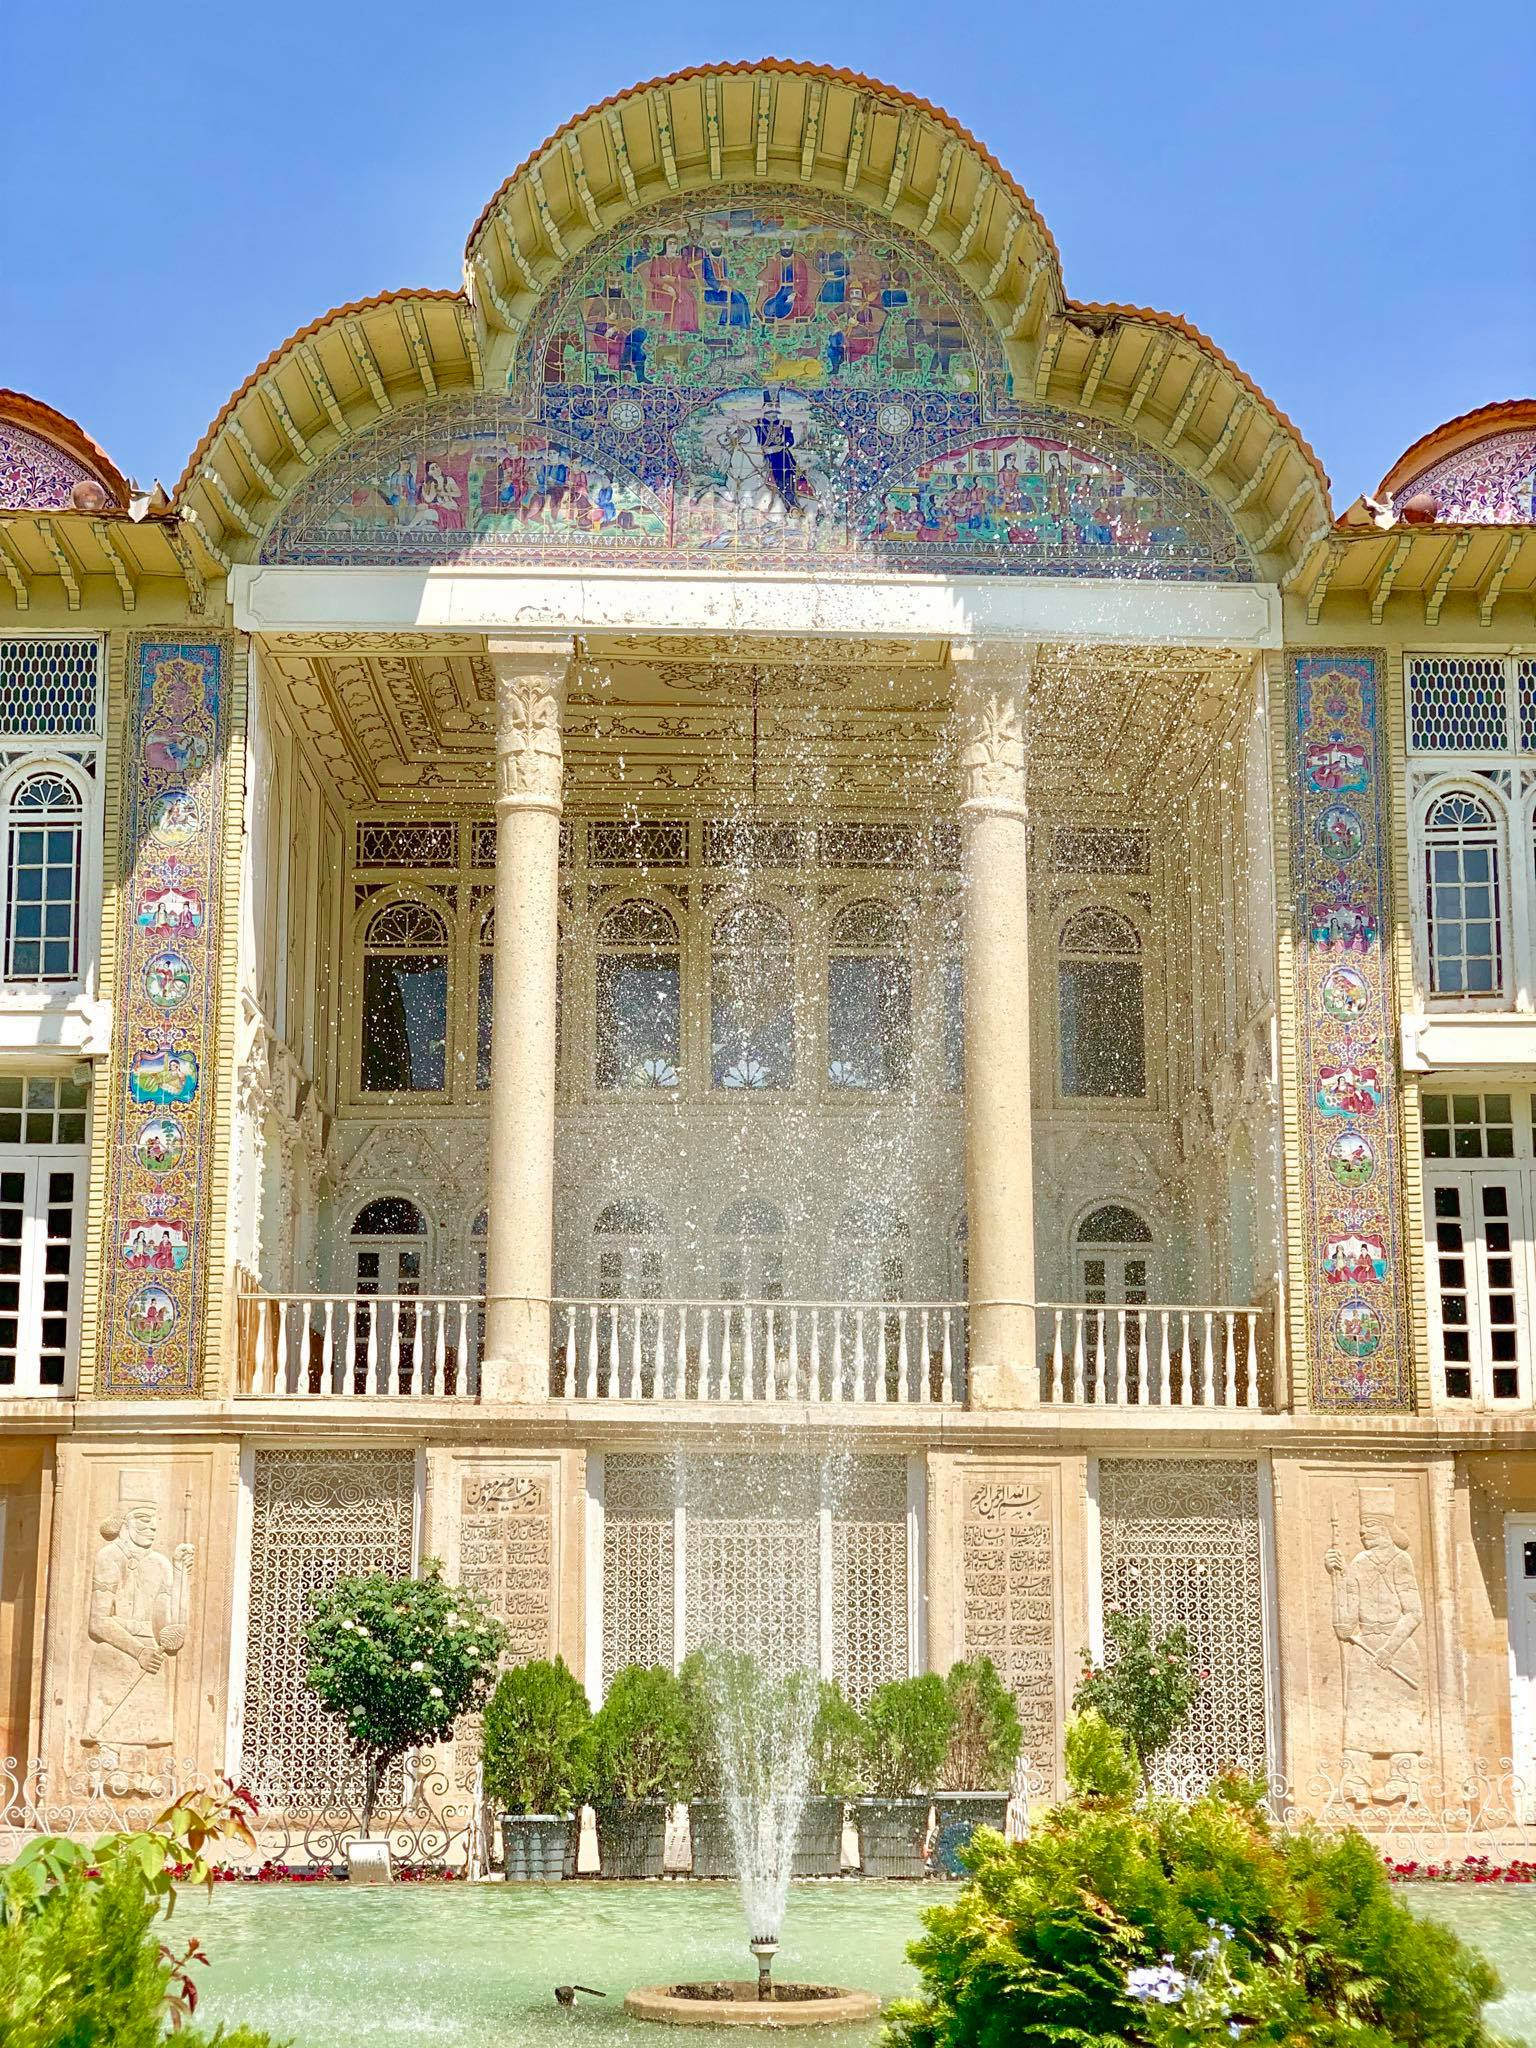 Kach Solo Travels in 2019 Full day tour of Shiraz4.jpg